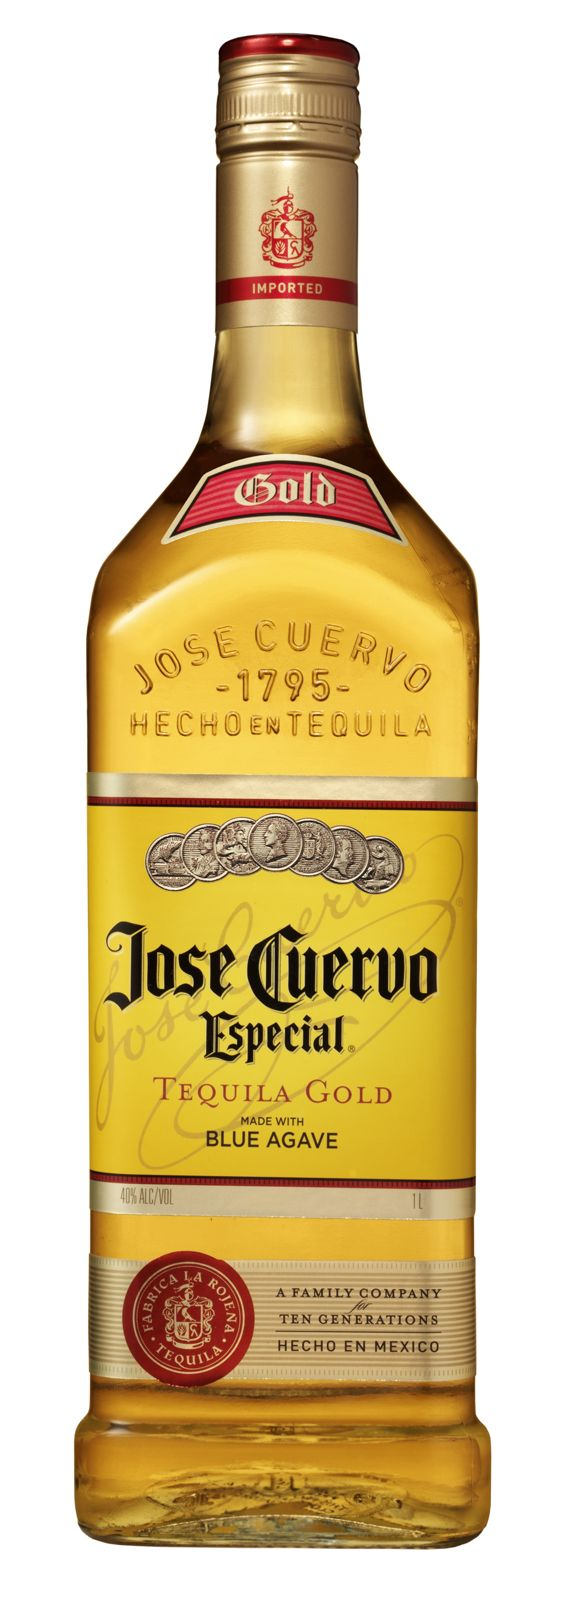 Pictures Of Tequila Bottles : pictures, tequila, bottles, Tequila, Bottle, Google, Search, Bottles,, Tequila,, Cuervo